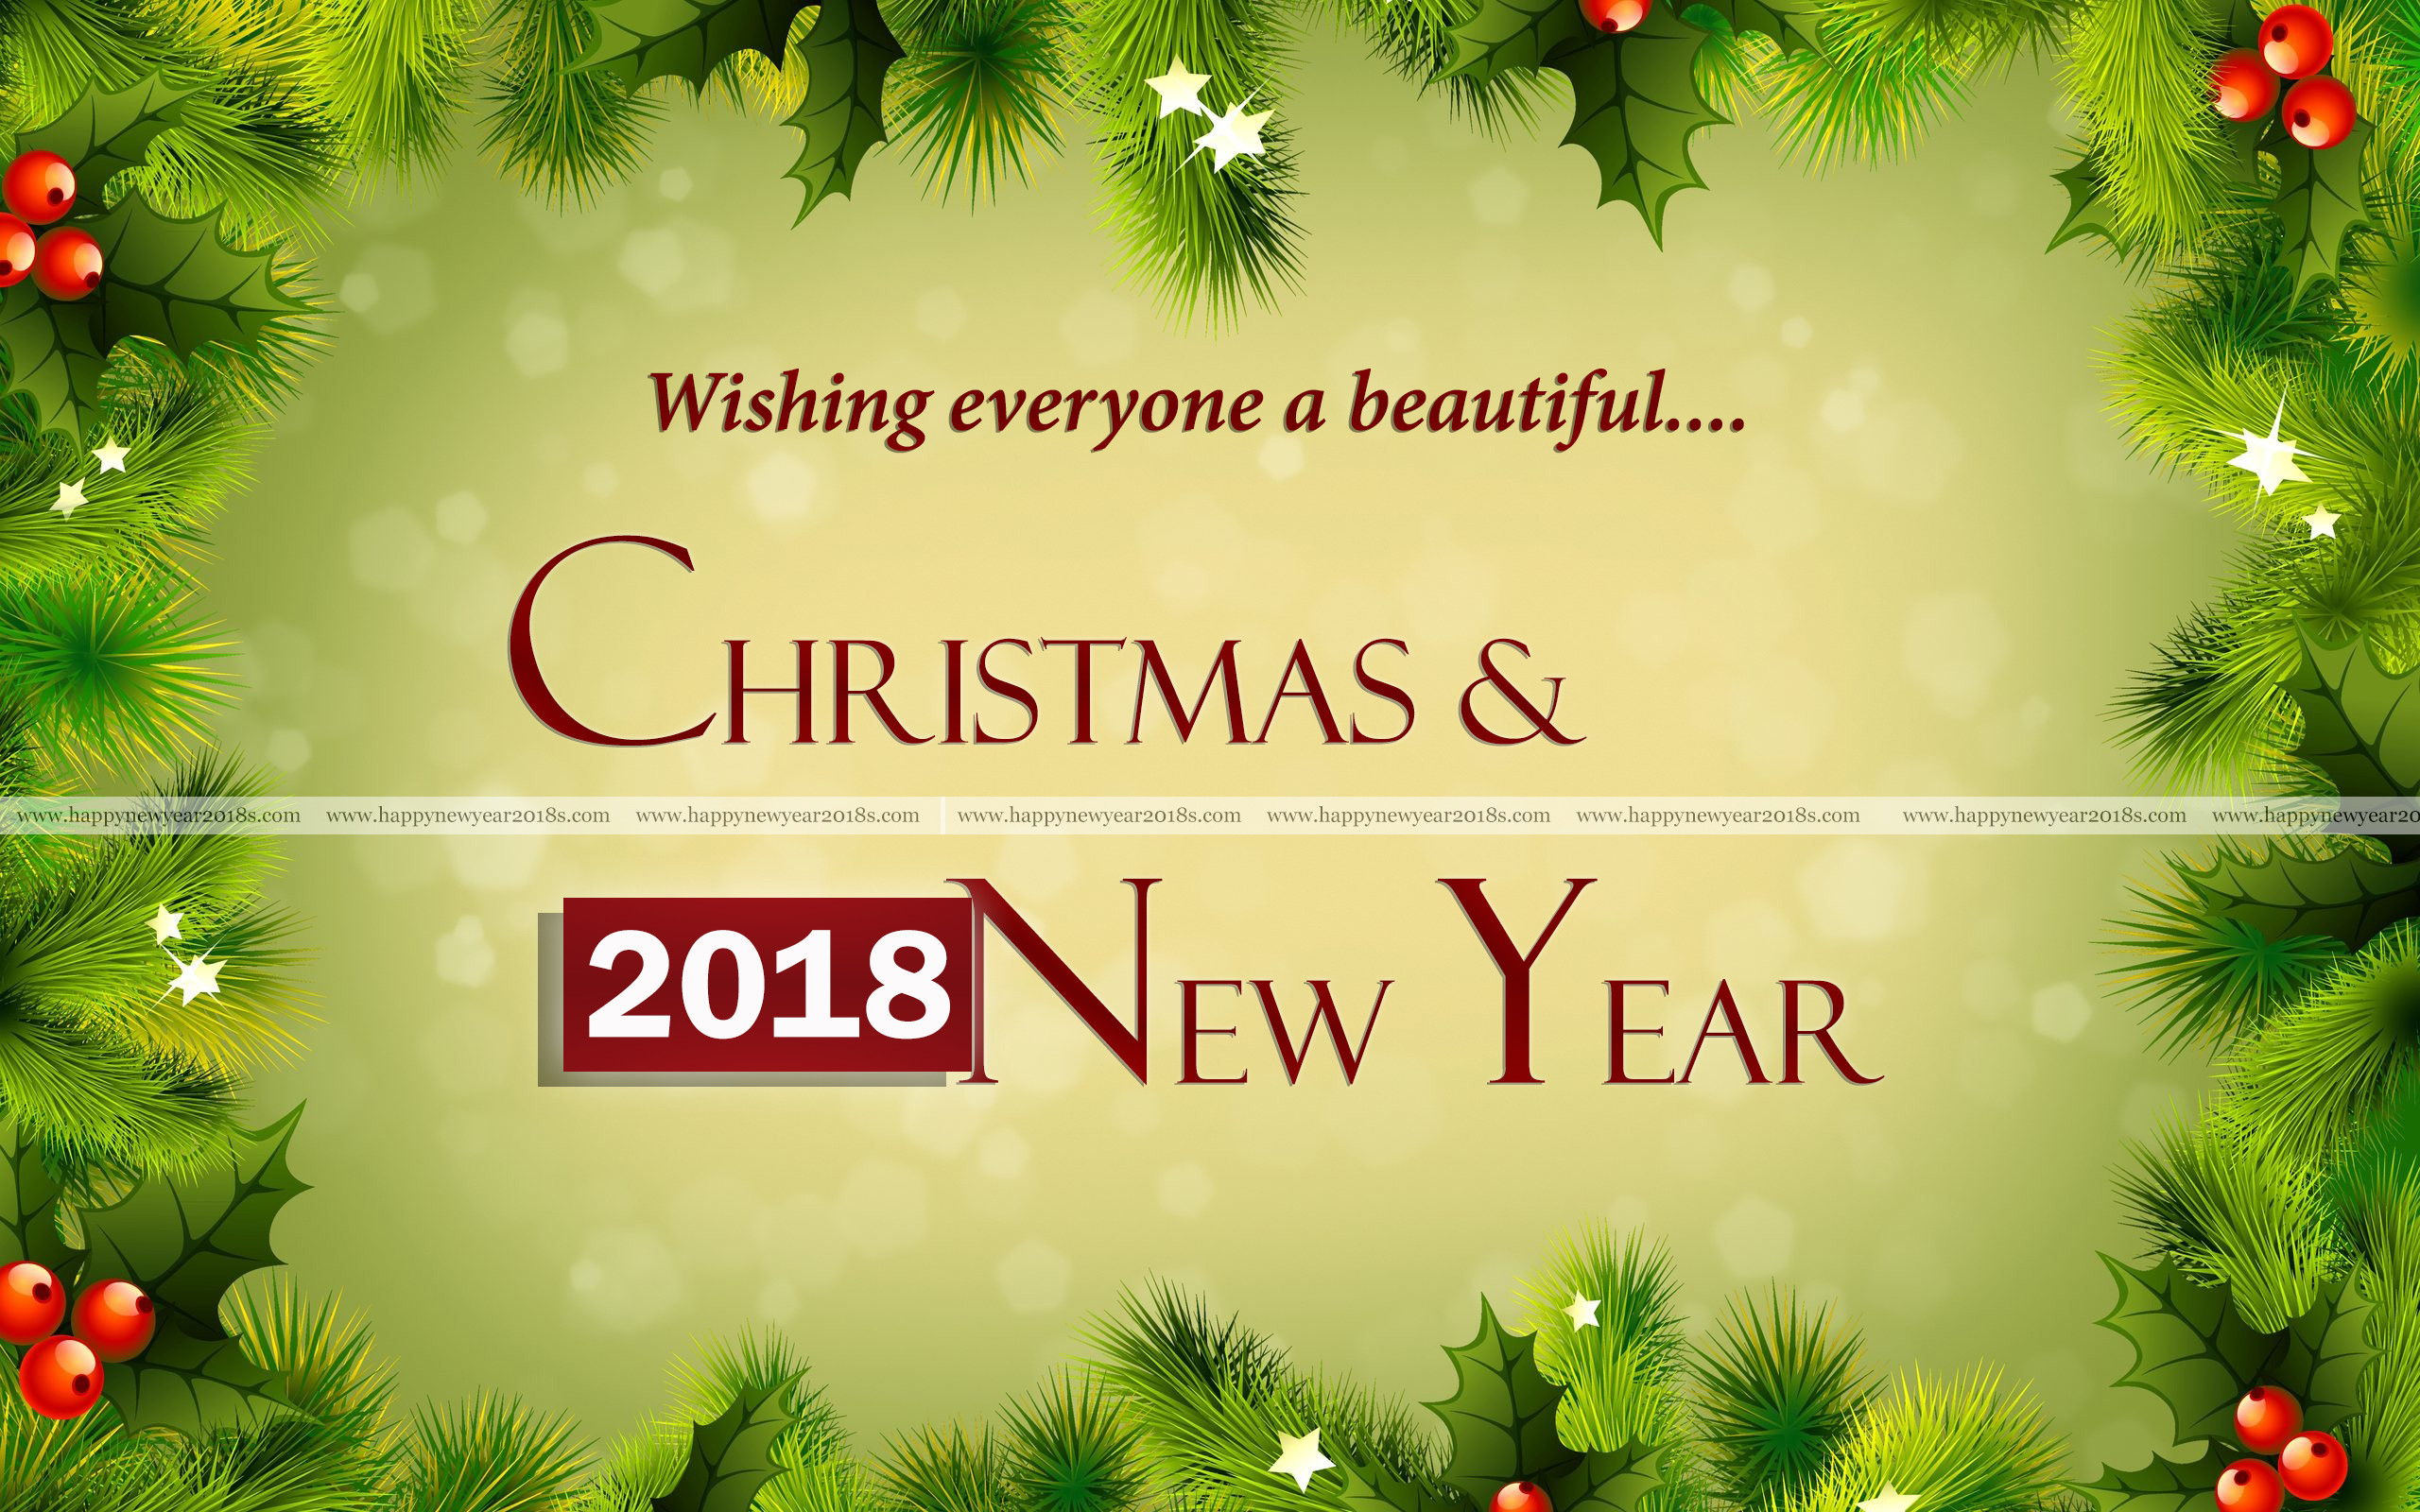 2729x1687 Happy New Year 2018 Whatsapp Dpu0027s, Facebook Dpu0027s, Wallpapers,  Images For Family And Friends: